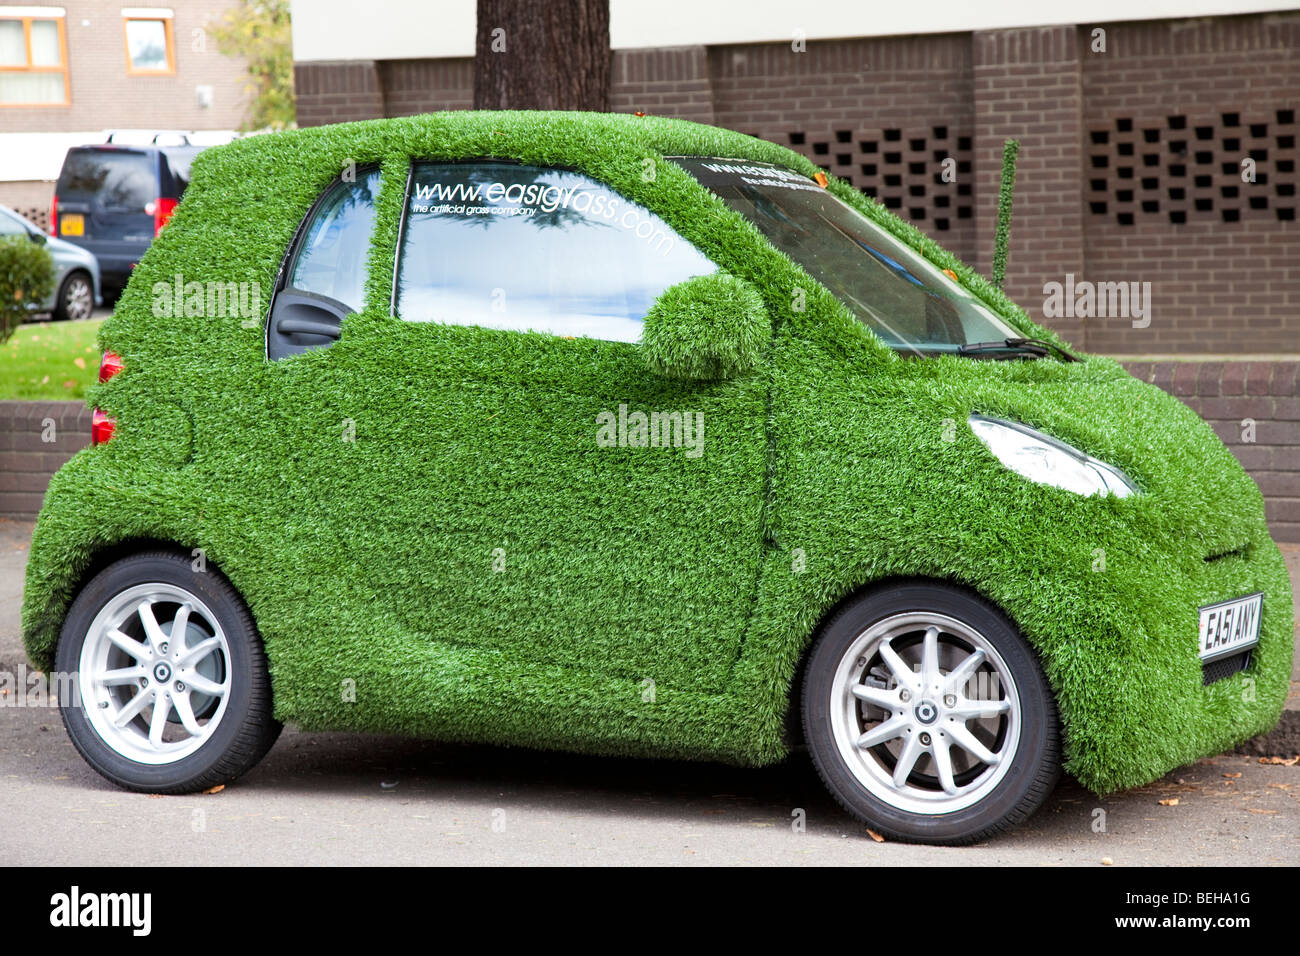 Smart Car Covered In Artificial Grass In Street London Uk